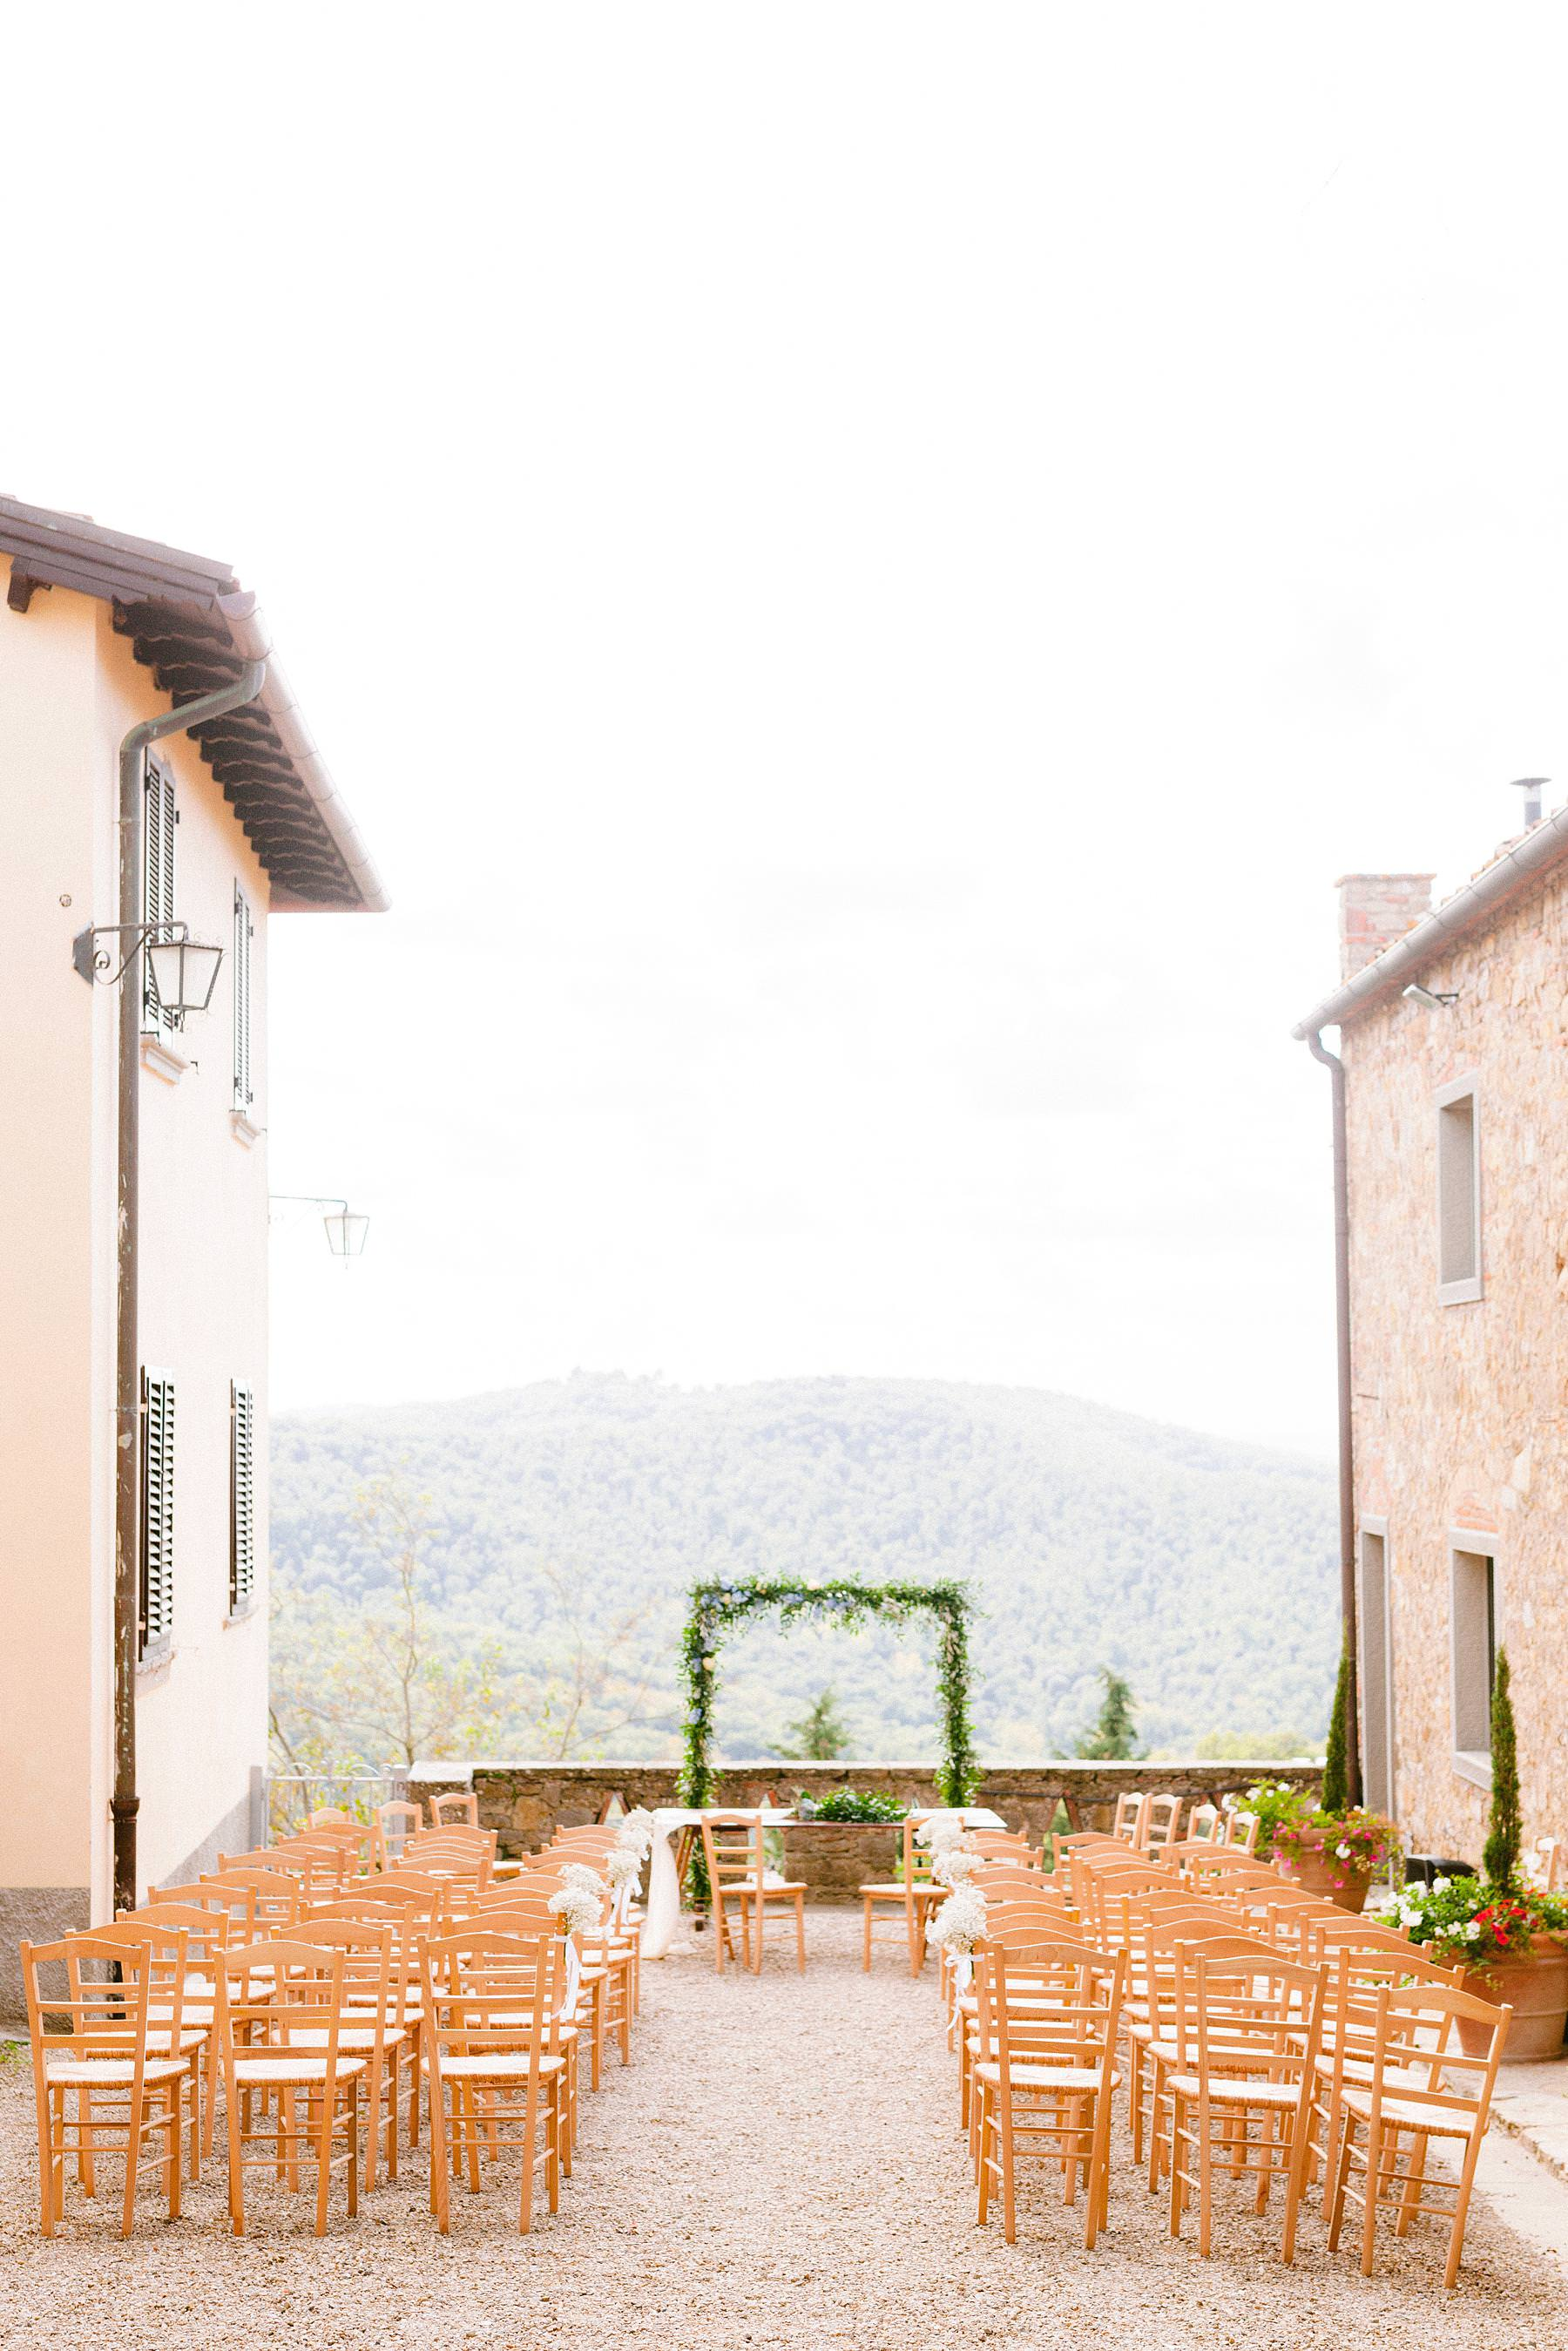 Lovely outdoor wedding ceremony decor at the terrace overlooking the green rolling hills of Tuscany in the charming historic residence of Montelucci Country Resort between Chianti and Valdarno